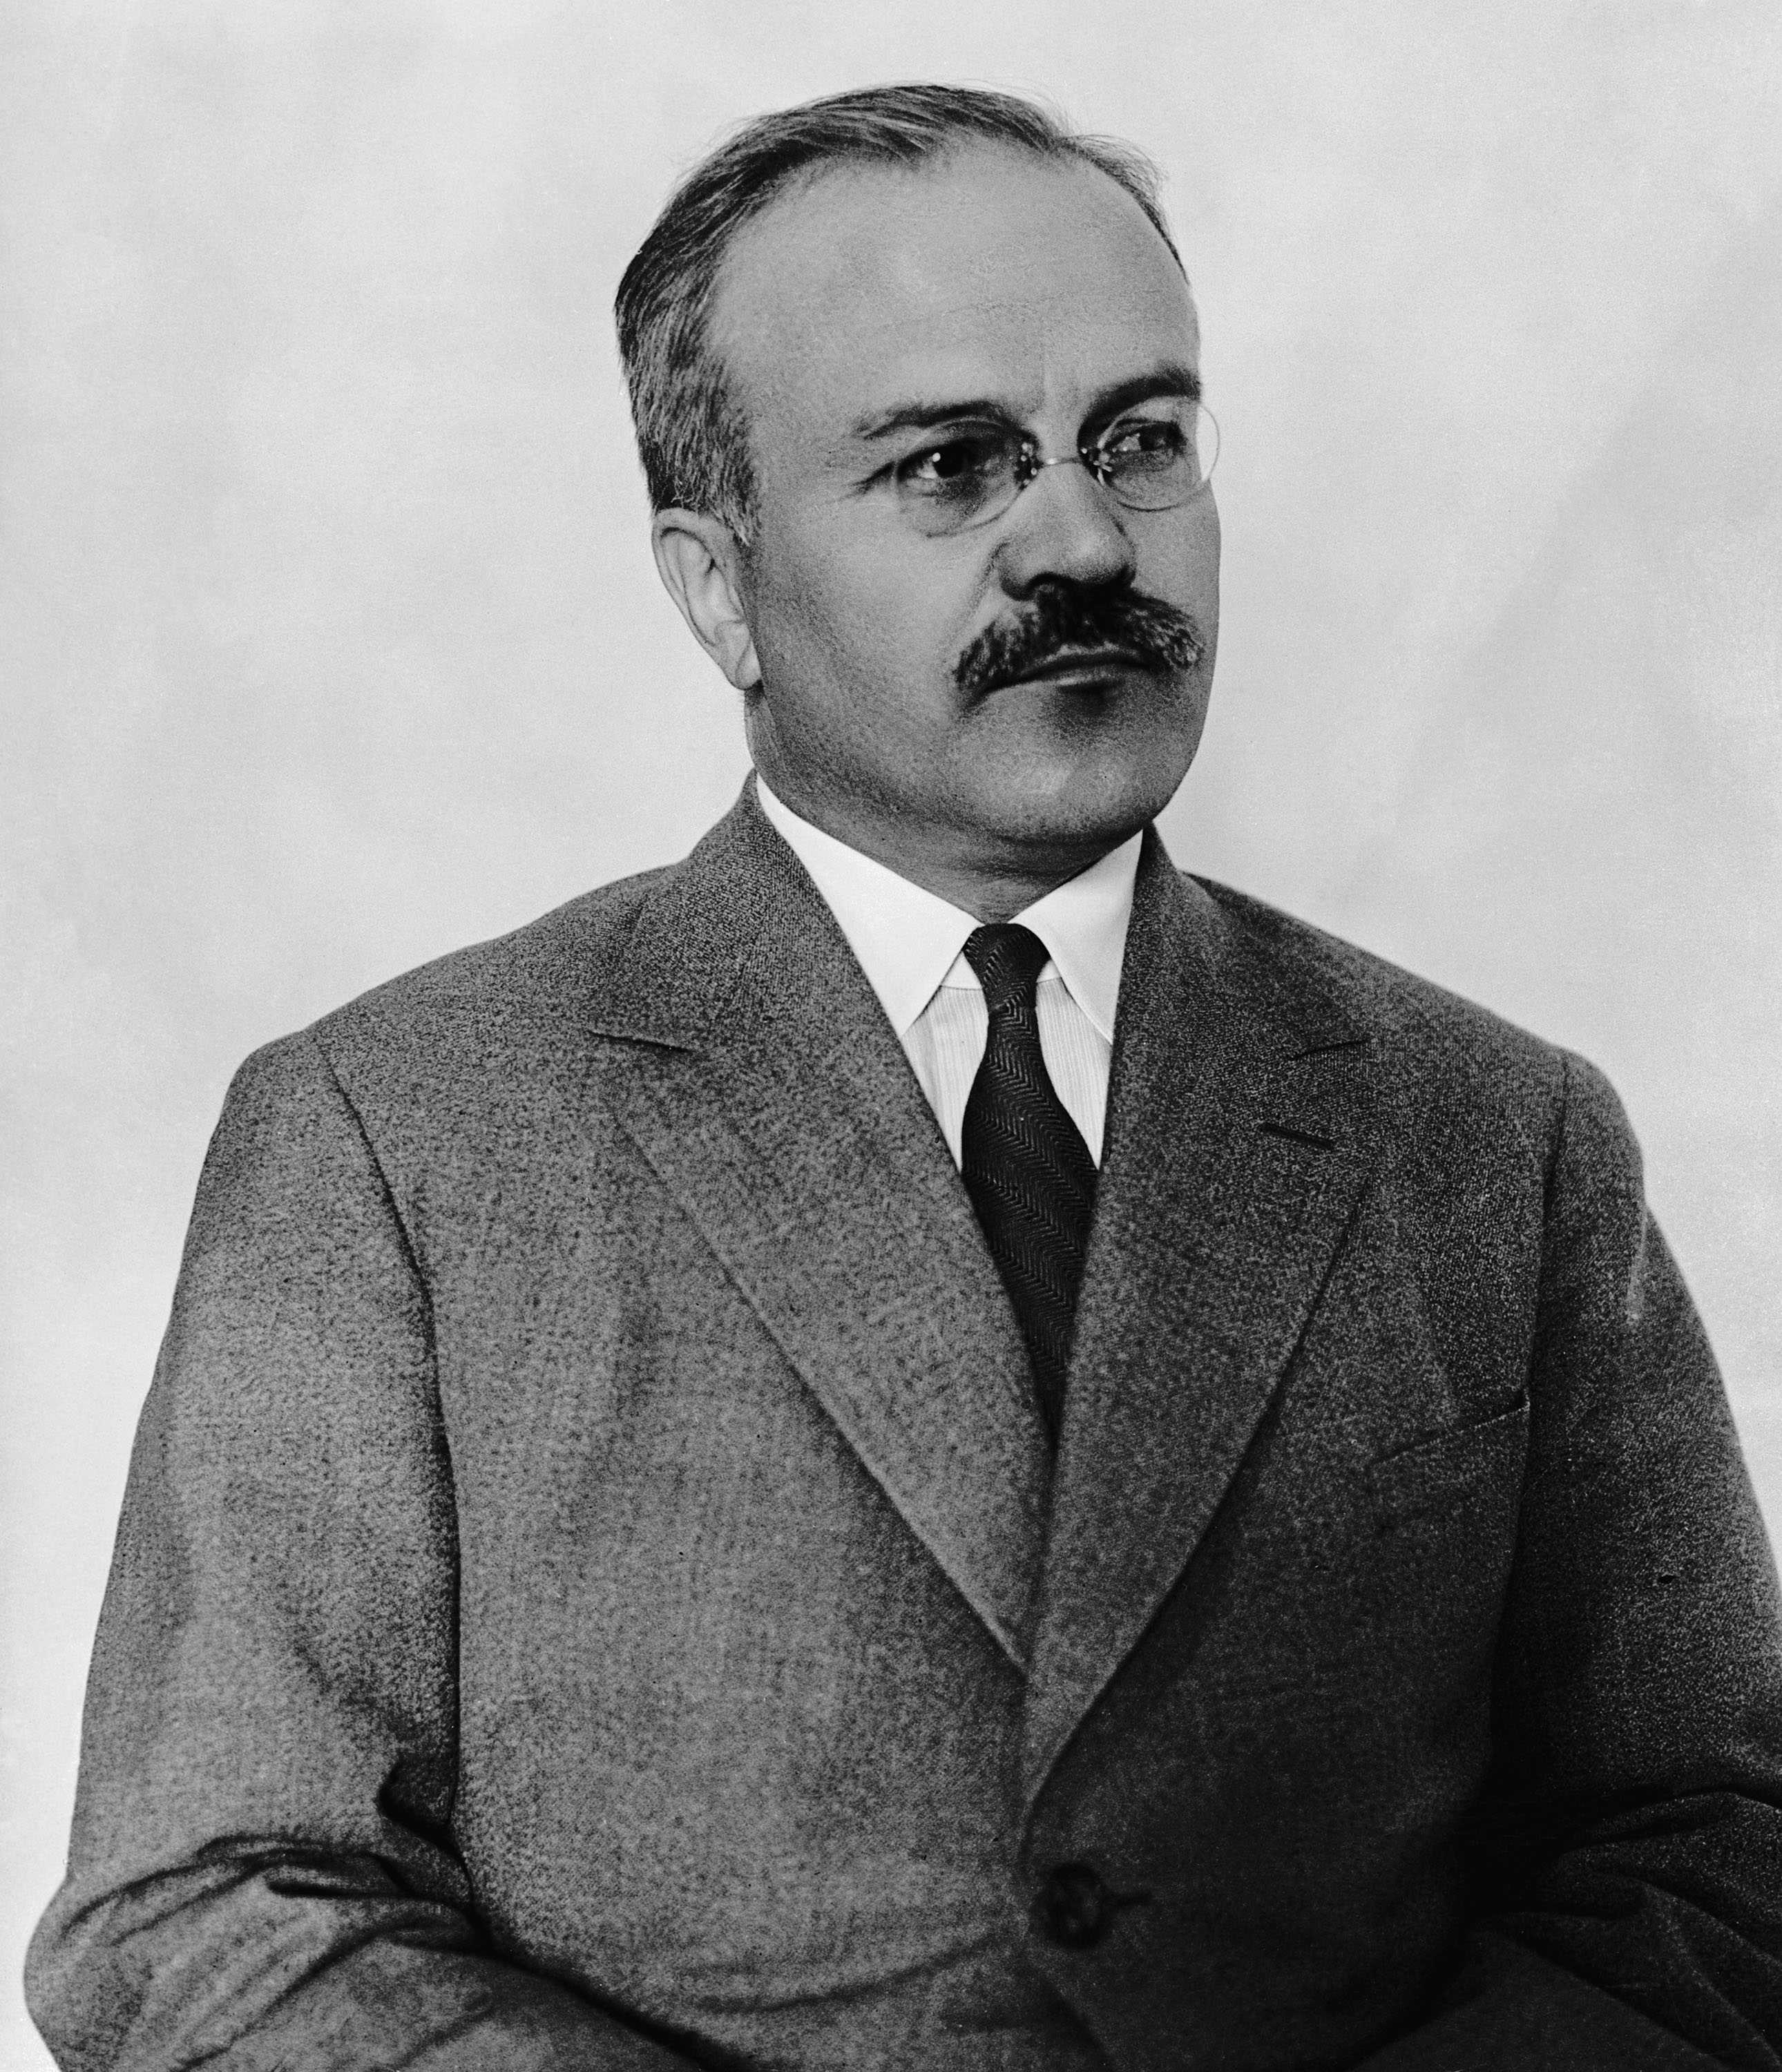 Soviet politician and diplomat Vyacheslav Molotov